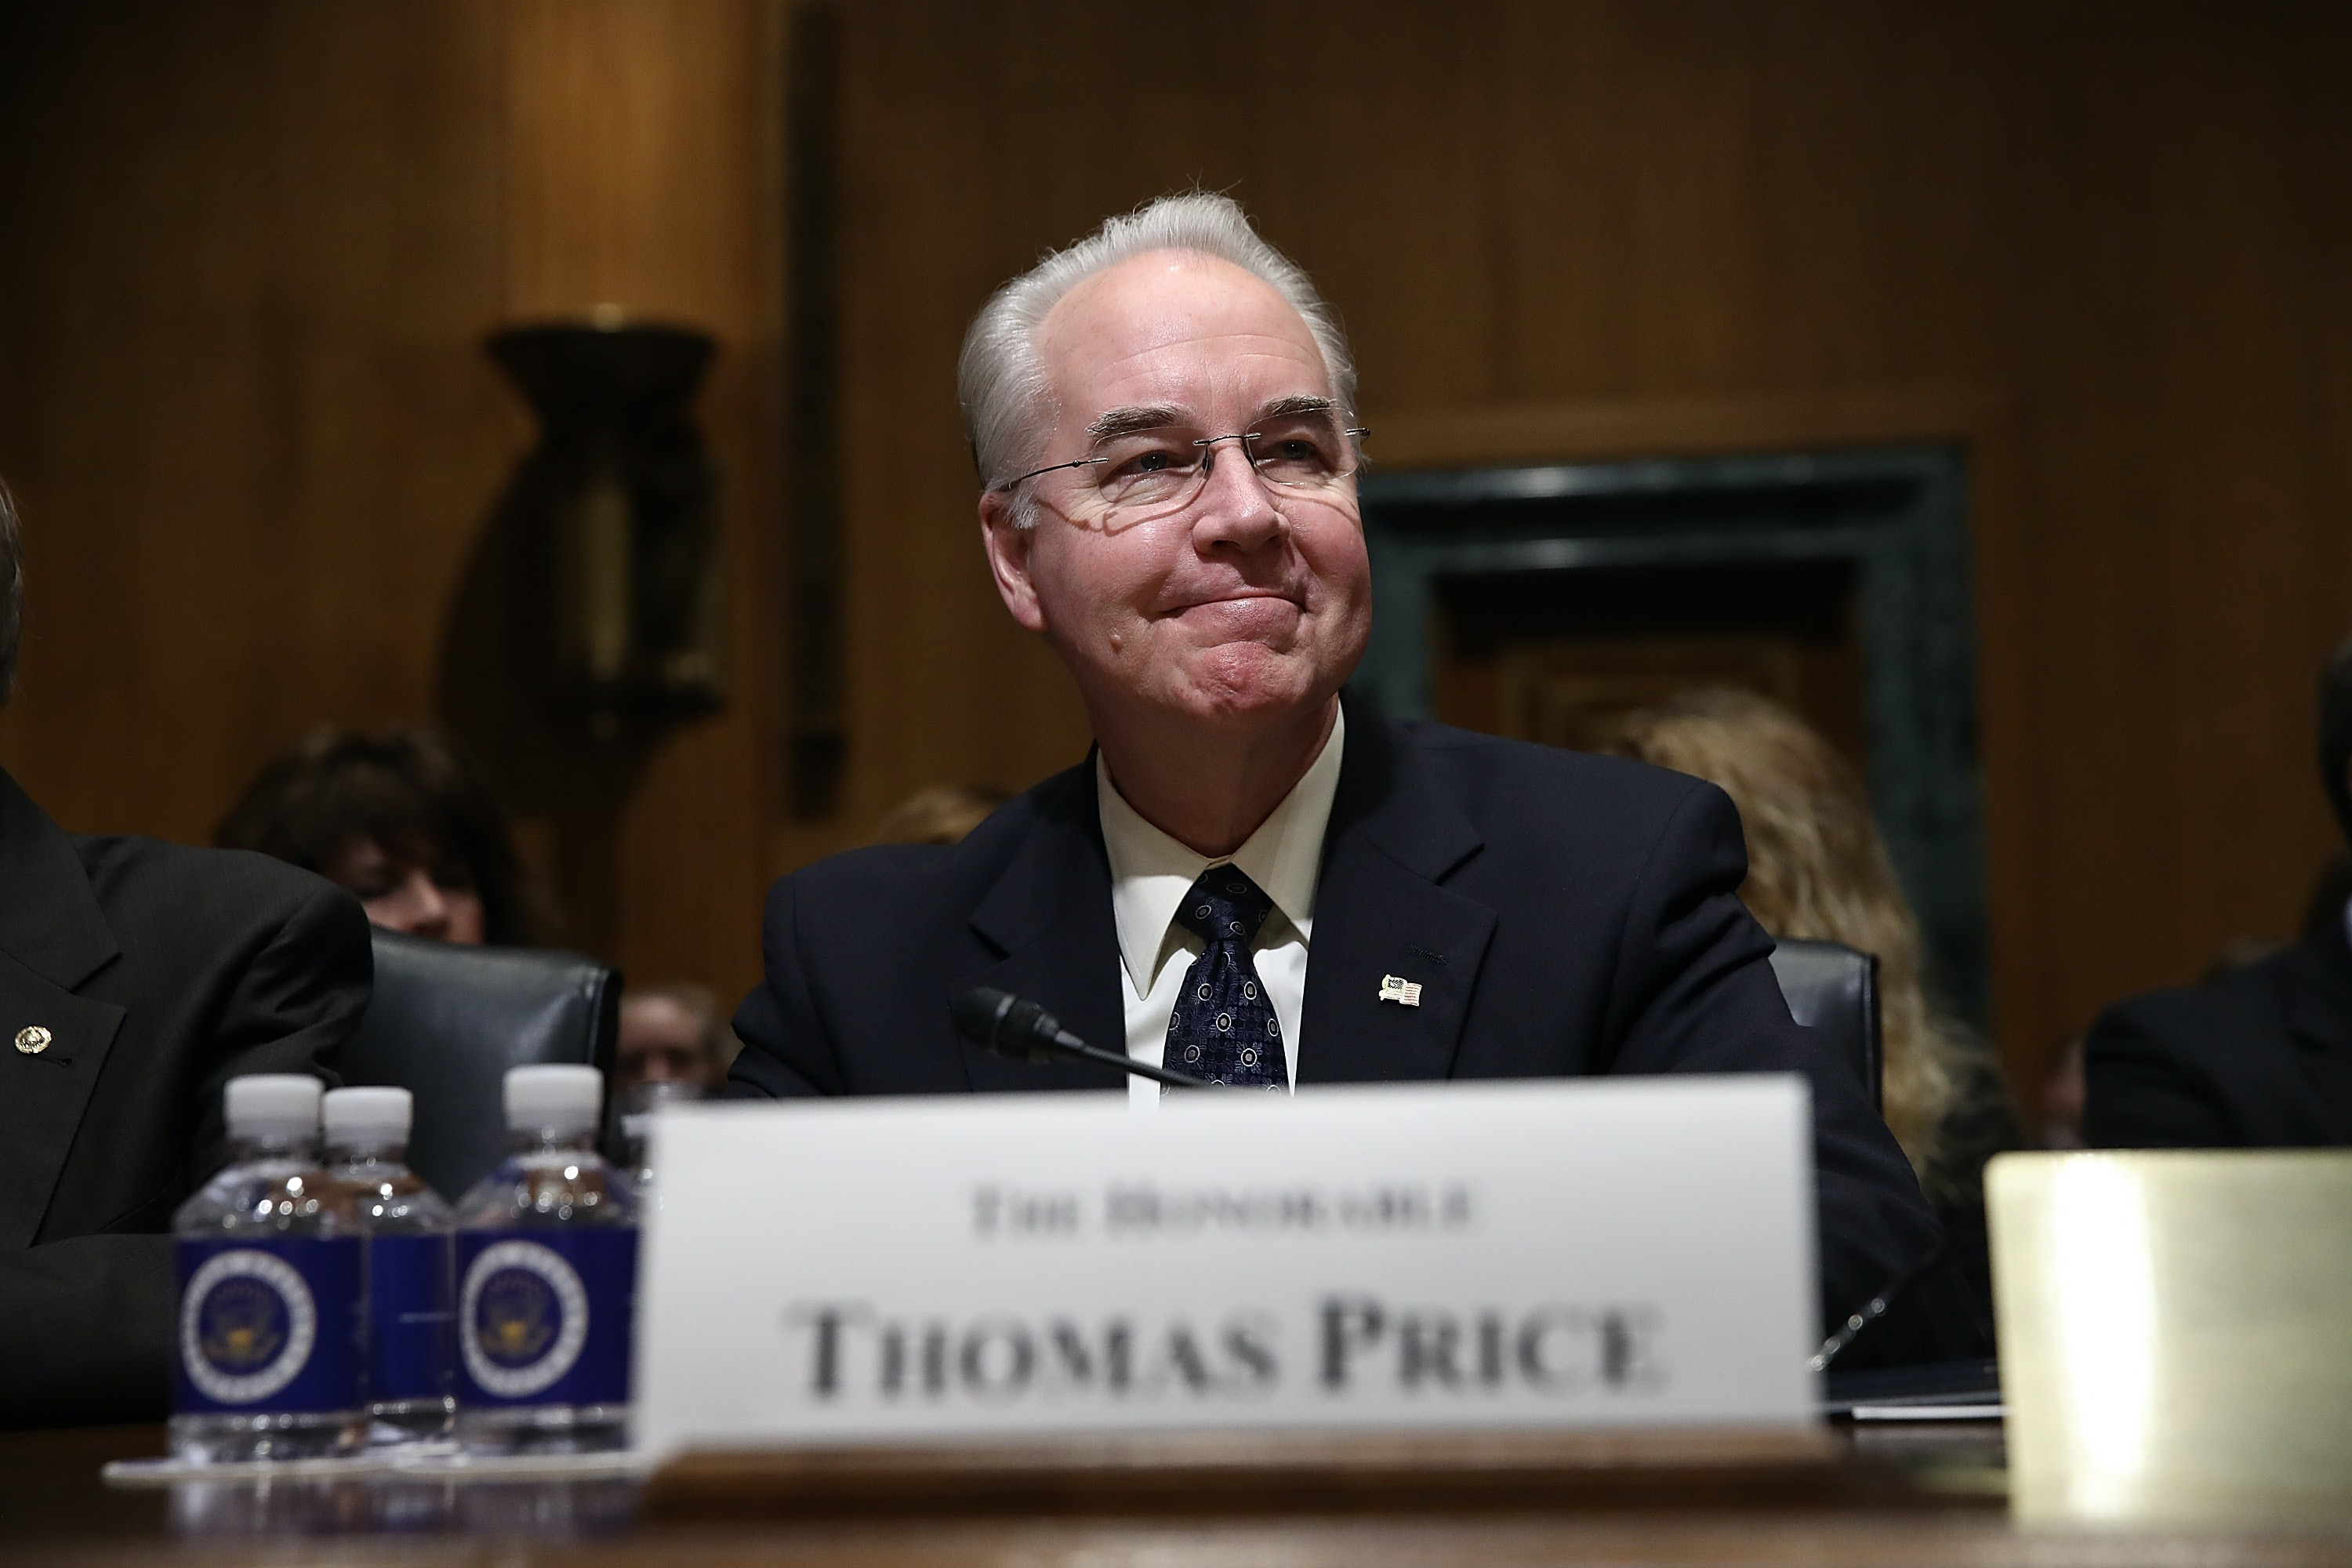 Senate on cusp of confirming Tom Price as Trump's health chief